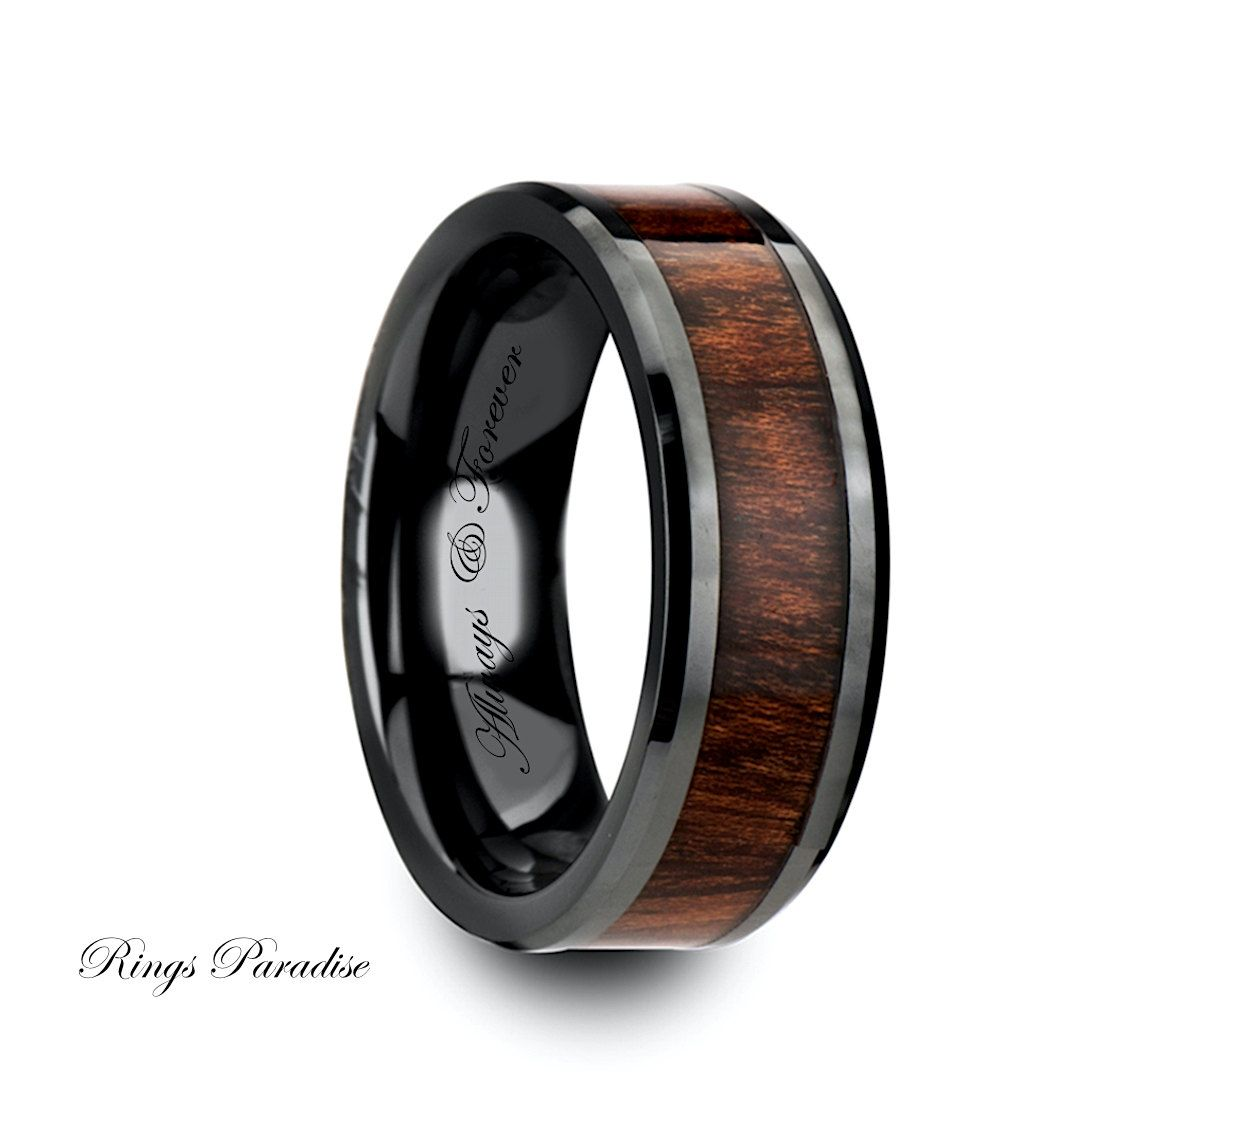 Wedding Bands Band Wood Inlaid Ring Black Ceramic Ring Ceramic Wedding Band Mens Ceramic Rings Wedd Black Ceramic Ring Ceramic Wedding Ring Ceramic Rings